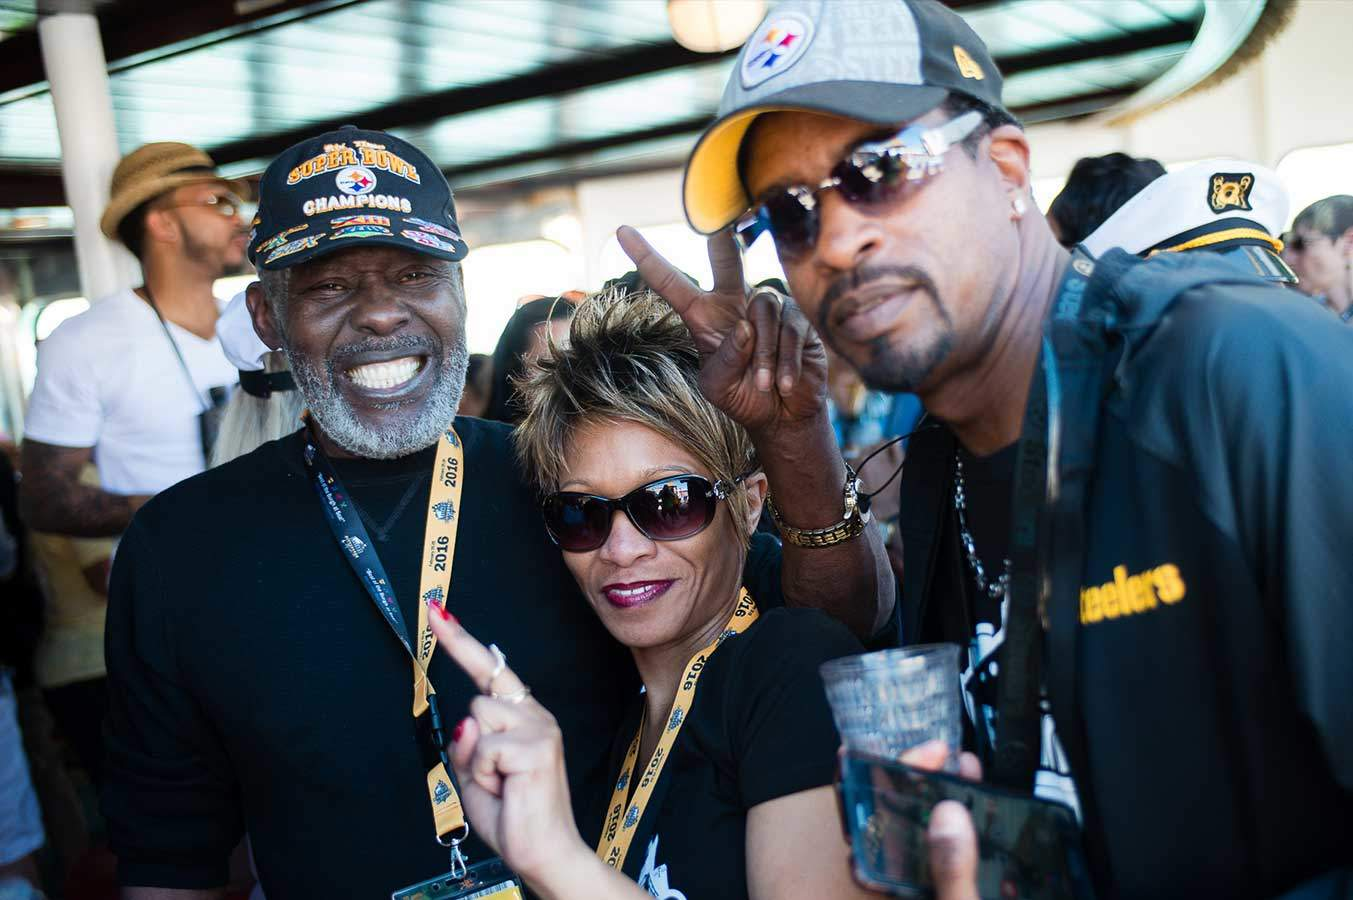 07_2016_legends_of_pittsburgh_cruise_photo